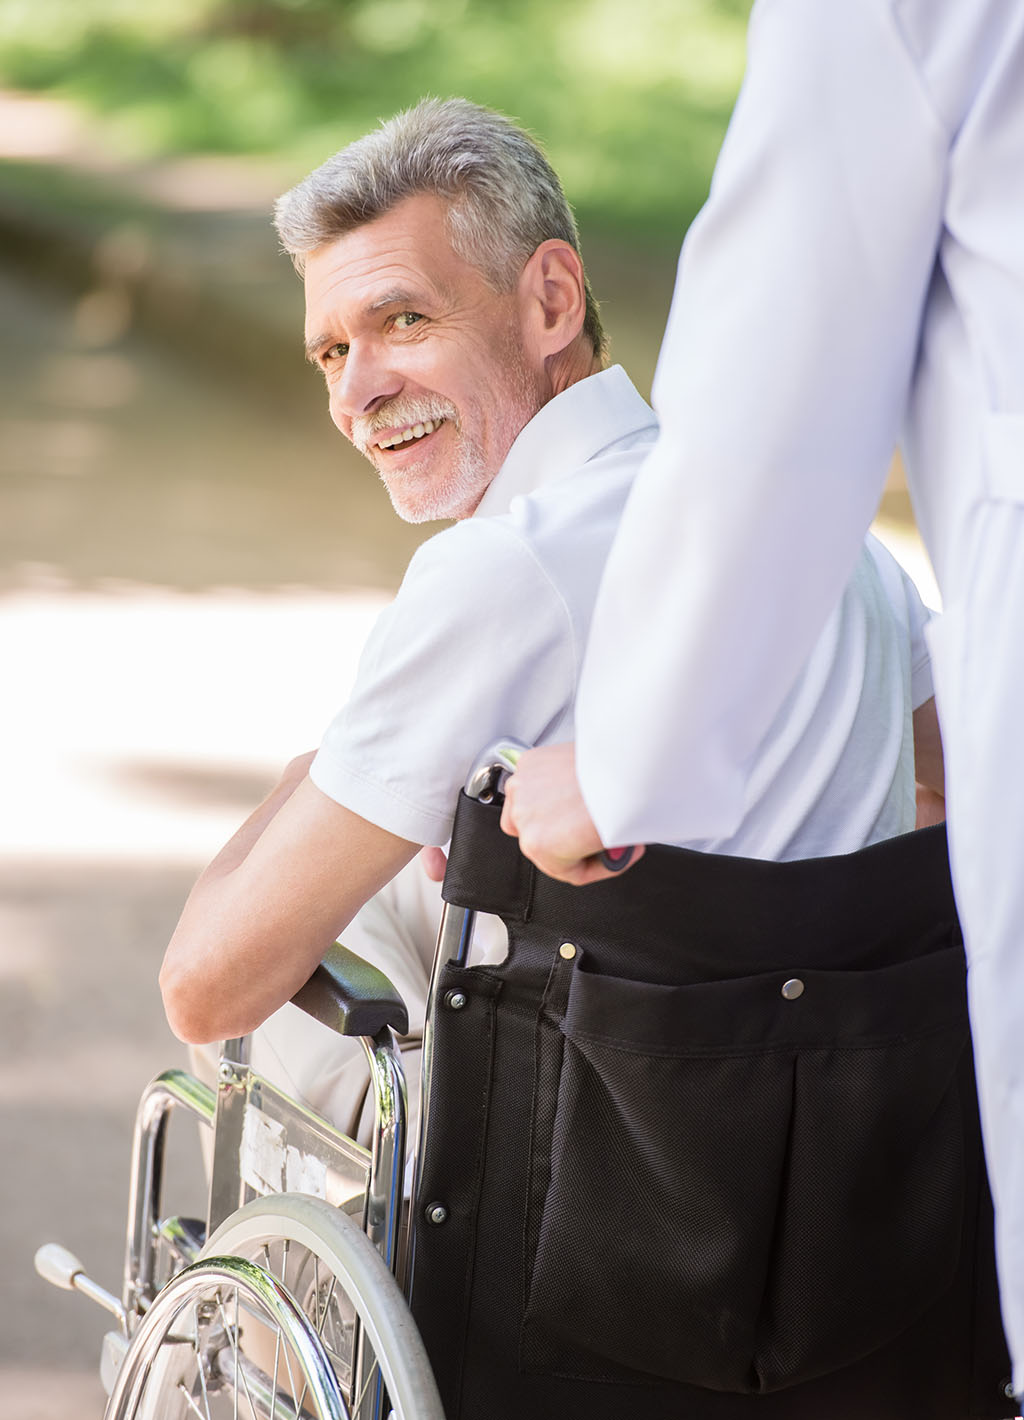 Male nurse pushing a senior patient in wheelchair outdoor on a sunny day.